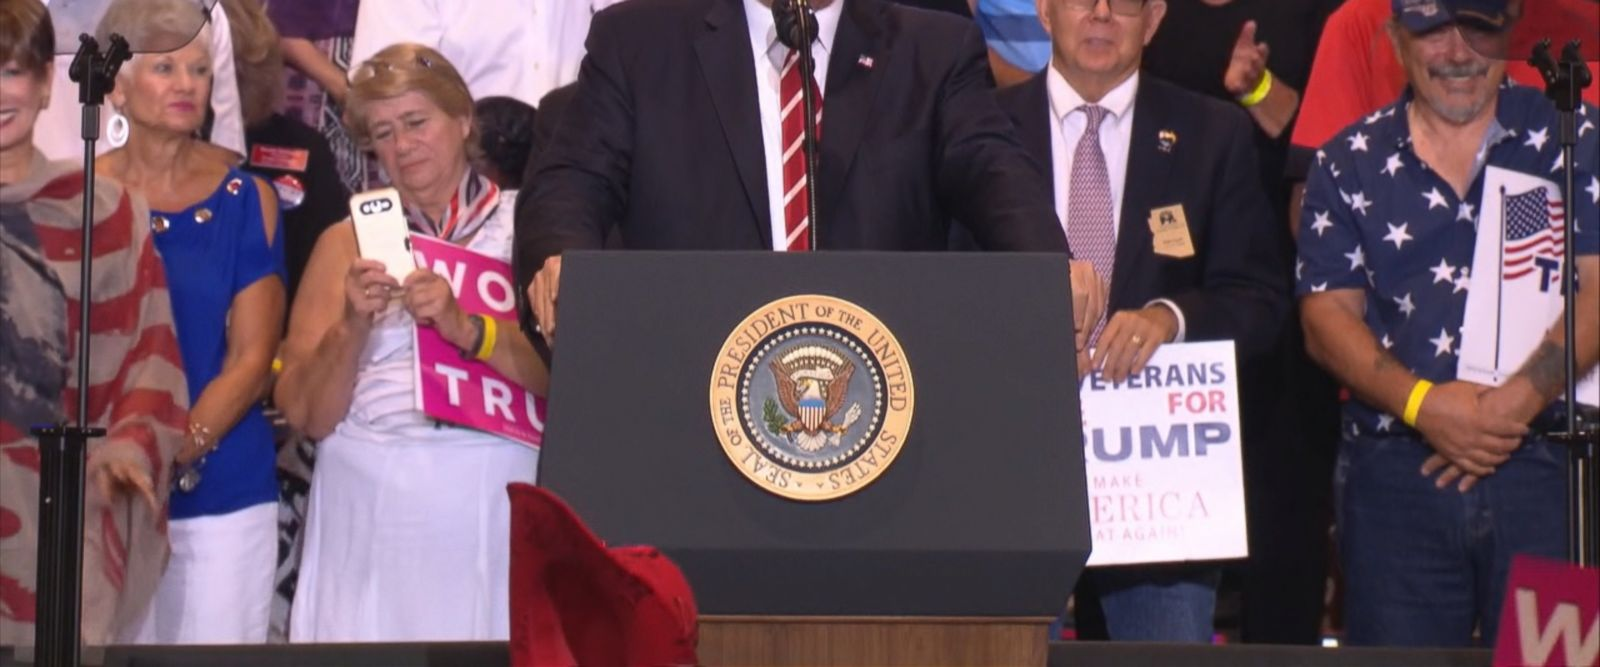 Trump said the media was to blame for the negative response to his response to Charlotteville, Virginia, while implying he would pardon Sheriff Joe Arpaio and vowing to continue efforts to reform health care at a campaign rally.